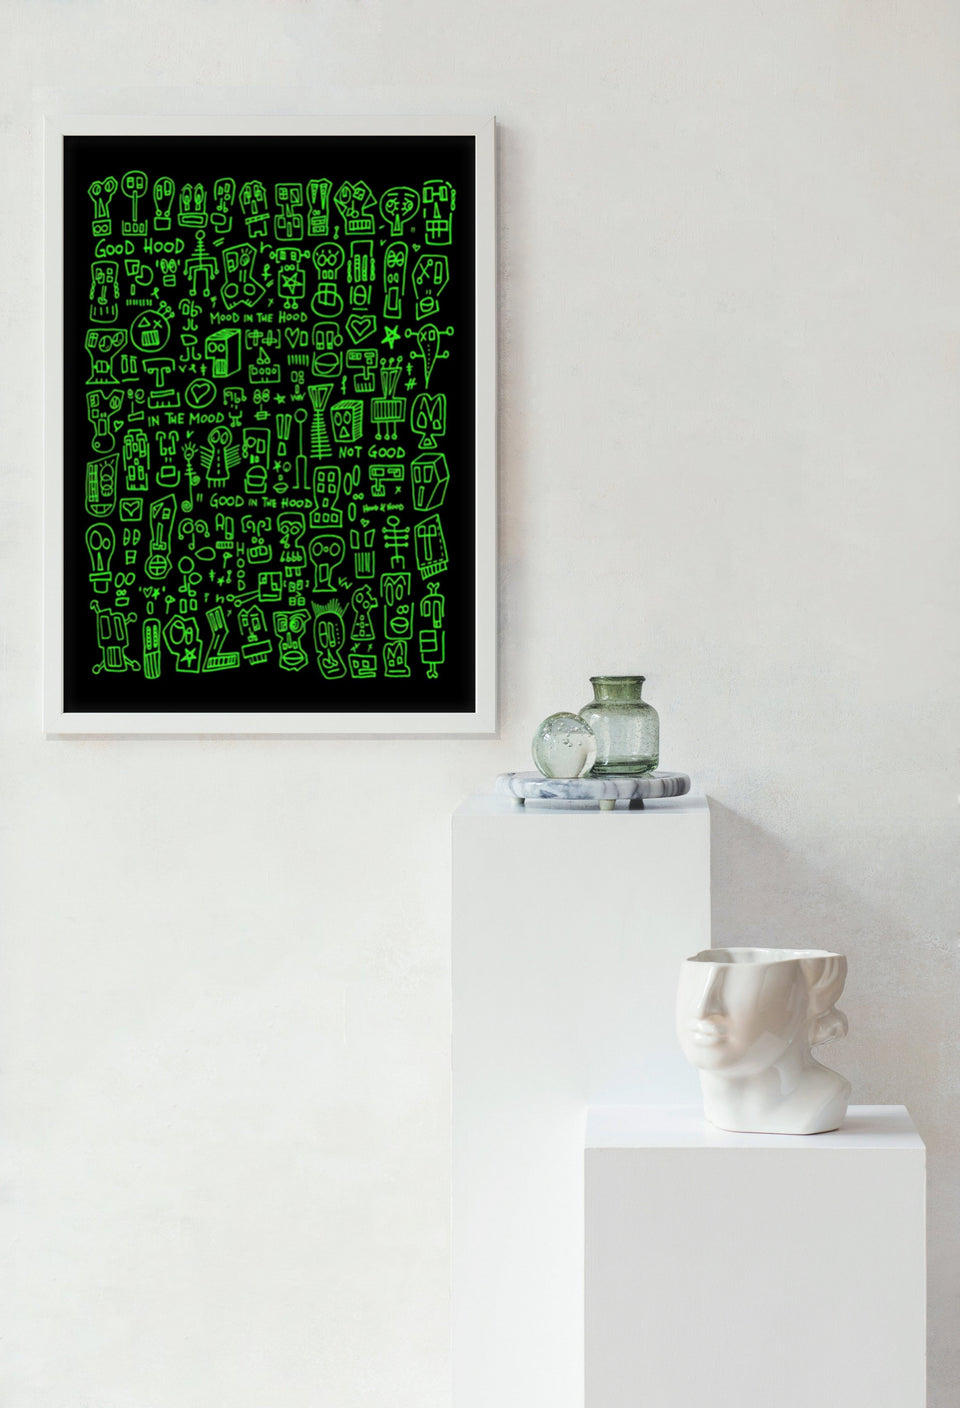 HOOD I Black & Green Print by Raul 33 from by Anna Paganelli